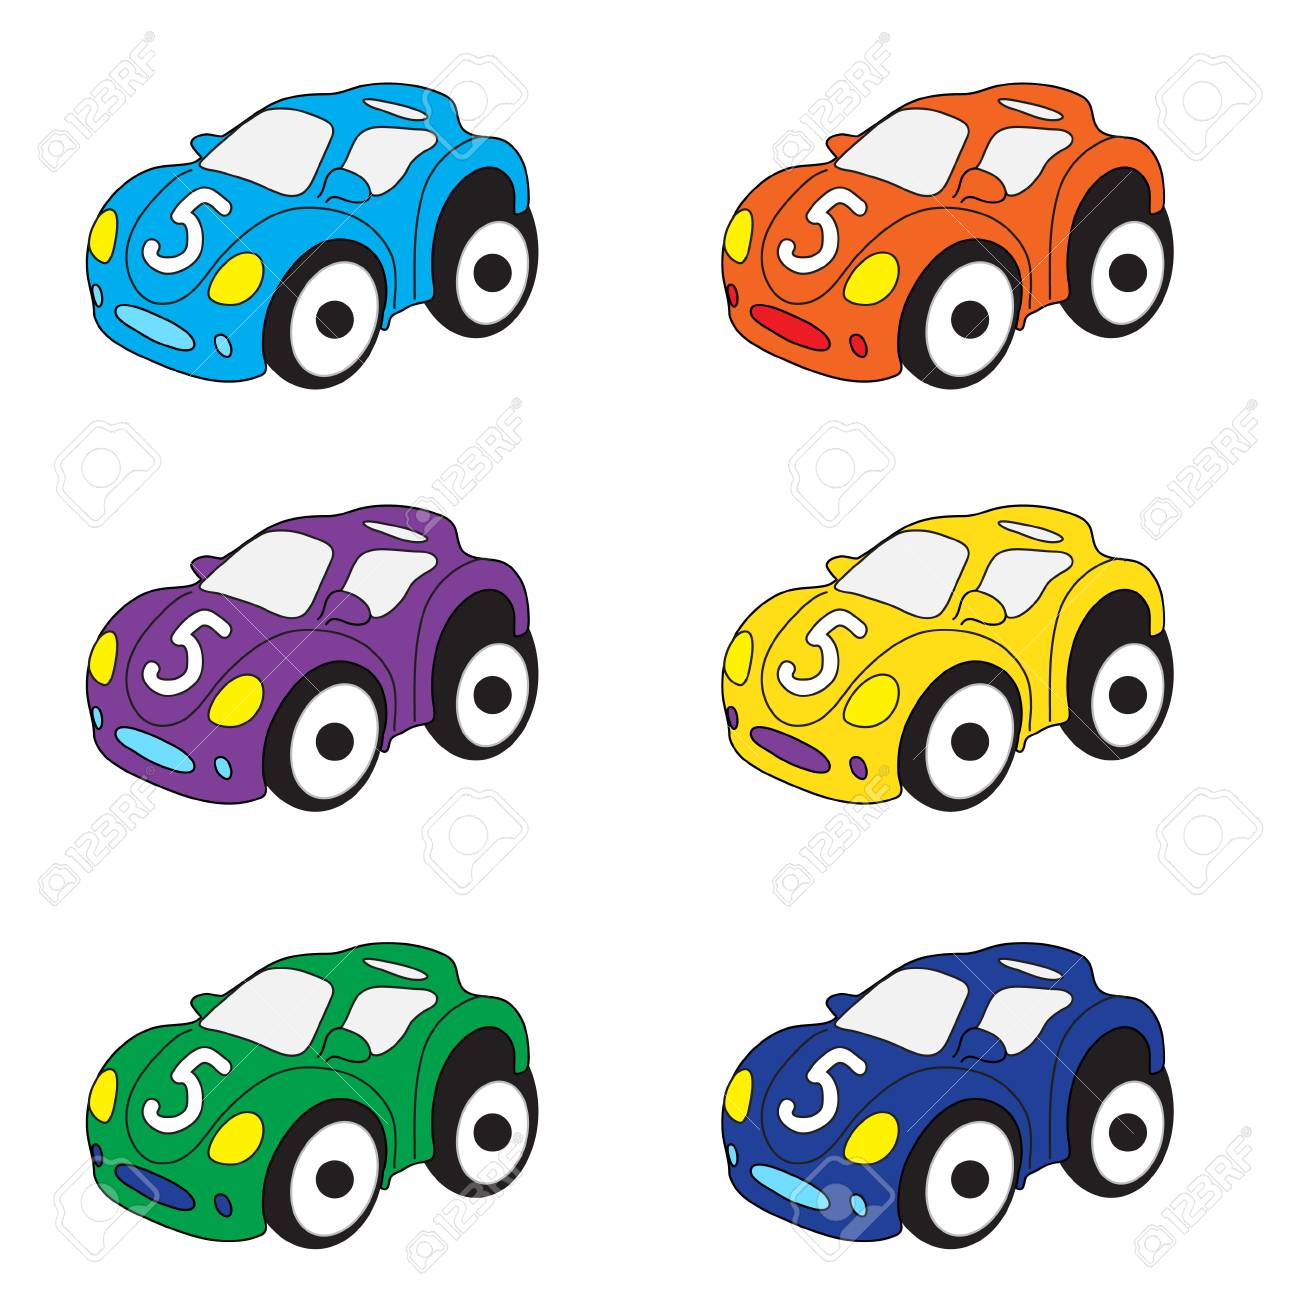 Kids Cars Cartoon Set Cars Toys Vector Illustration Royalty Free Cliparts Vectors And Stock Illustration Image 60614225